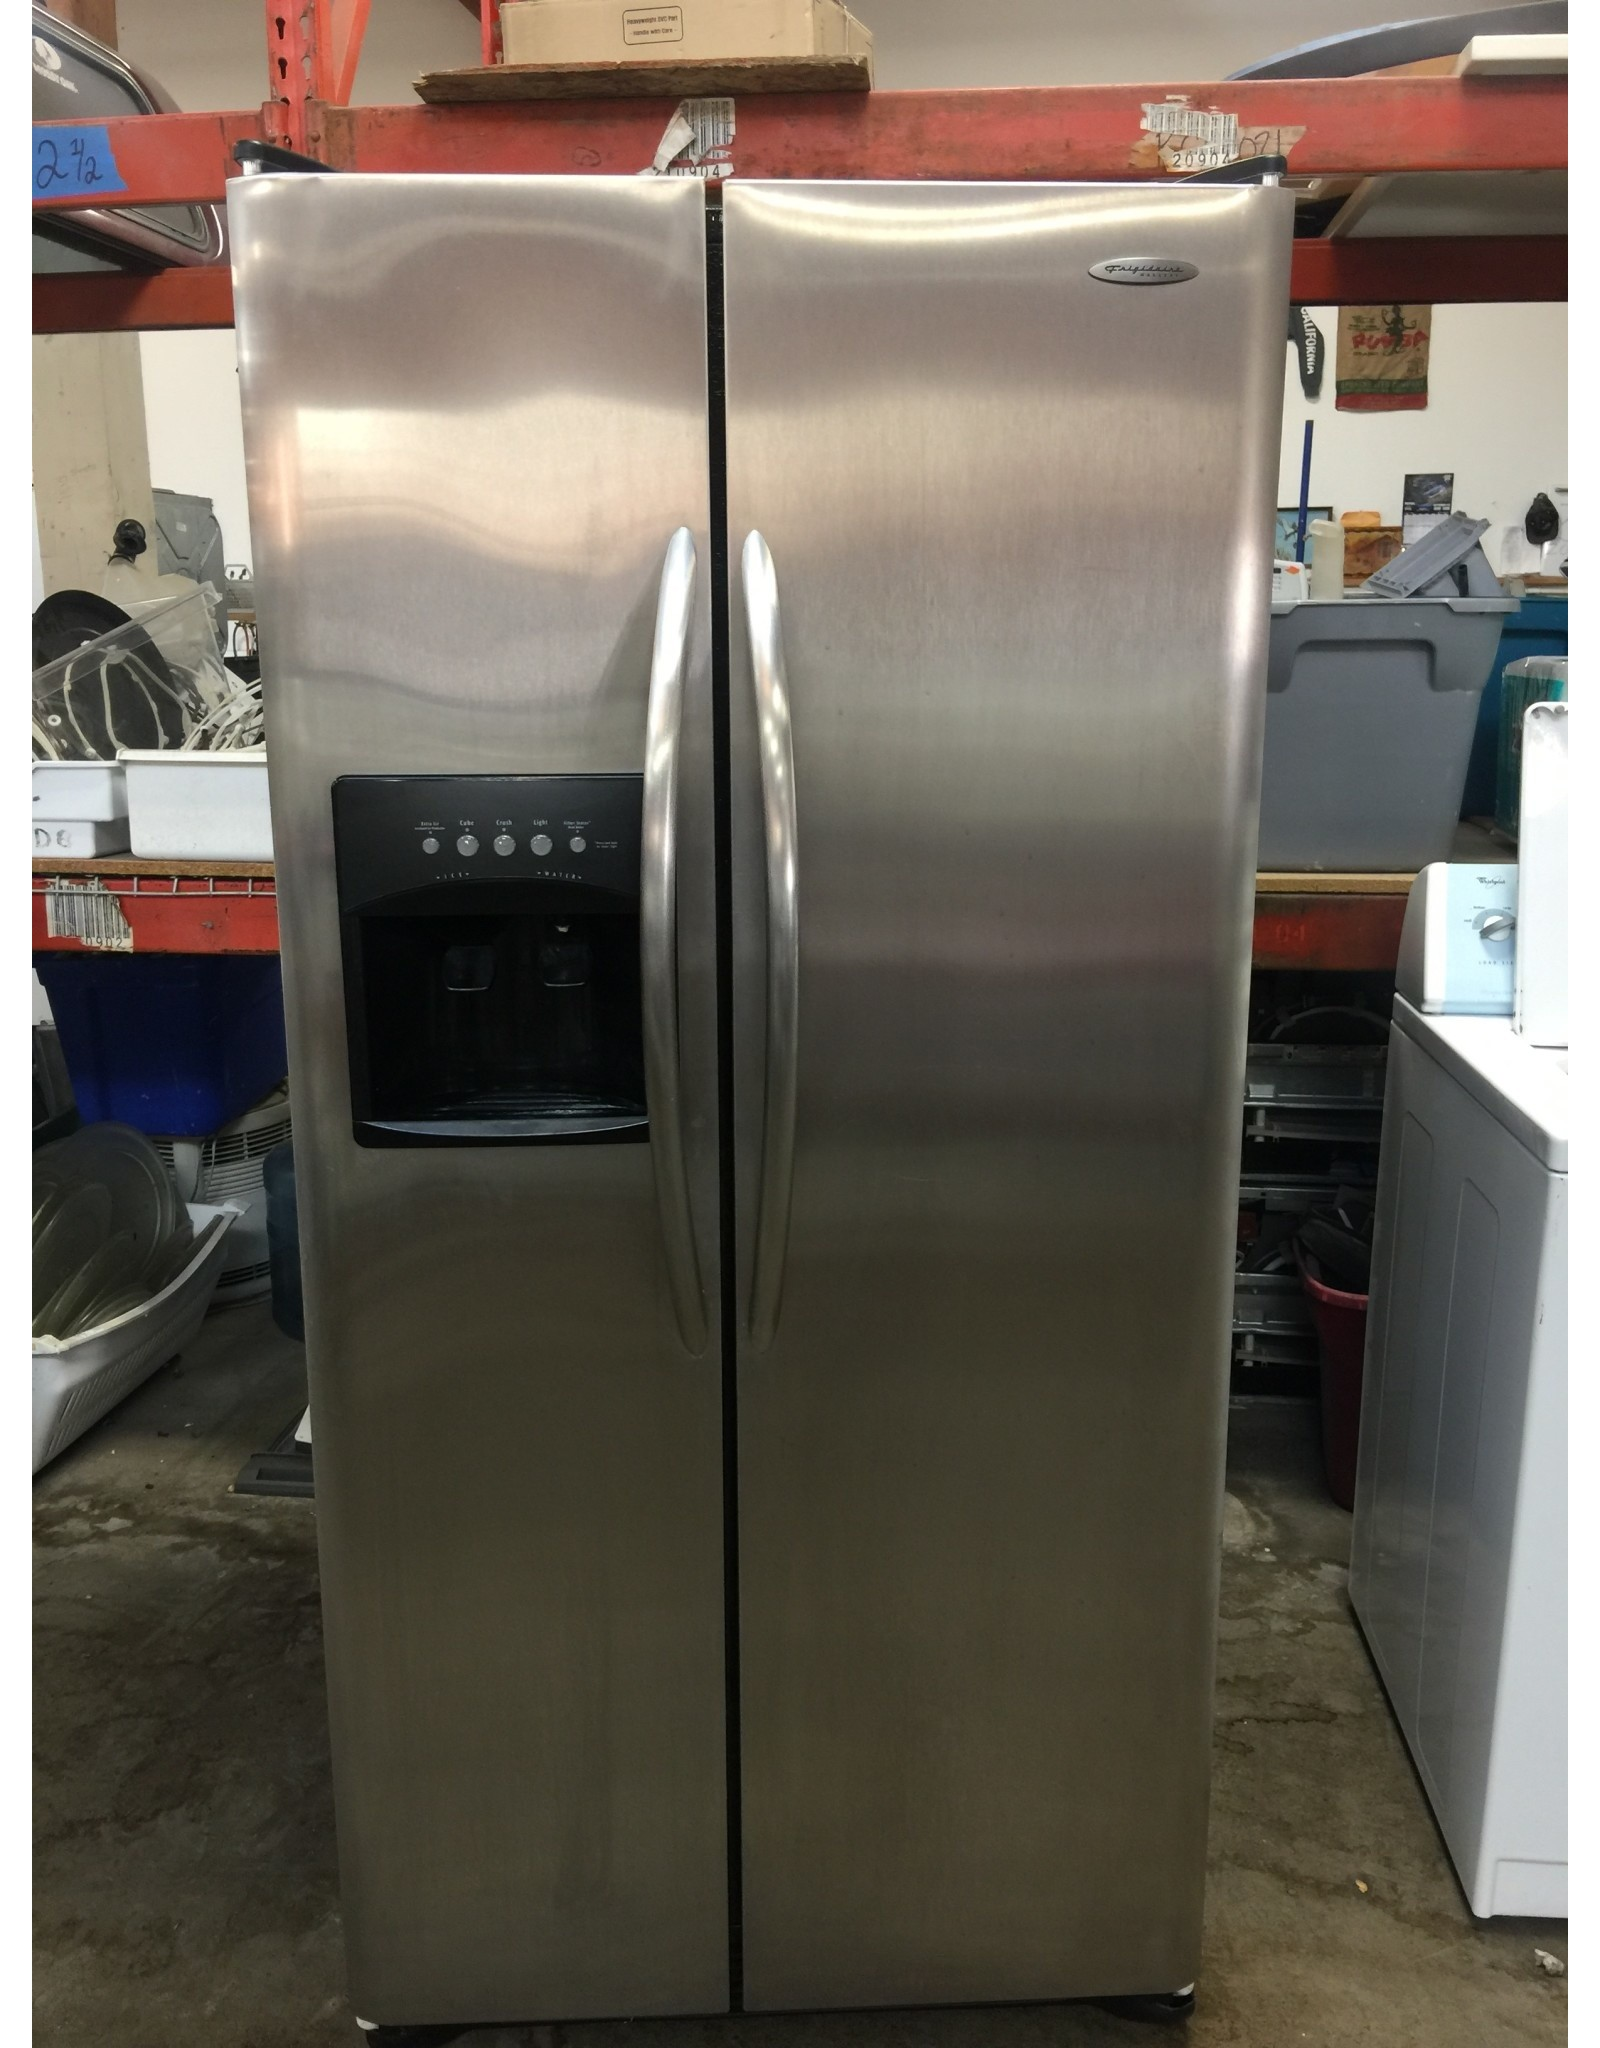 FRIGIDAIRE GALLERY FRIGIDAIRE GALLERY SIDE BY SIDE STAINLESS REFRIGERATOR W/ICE & WATER DISPENSER